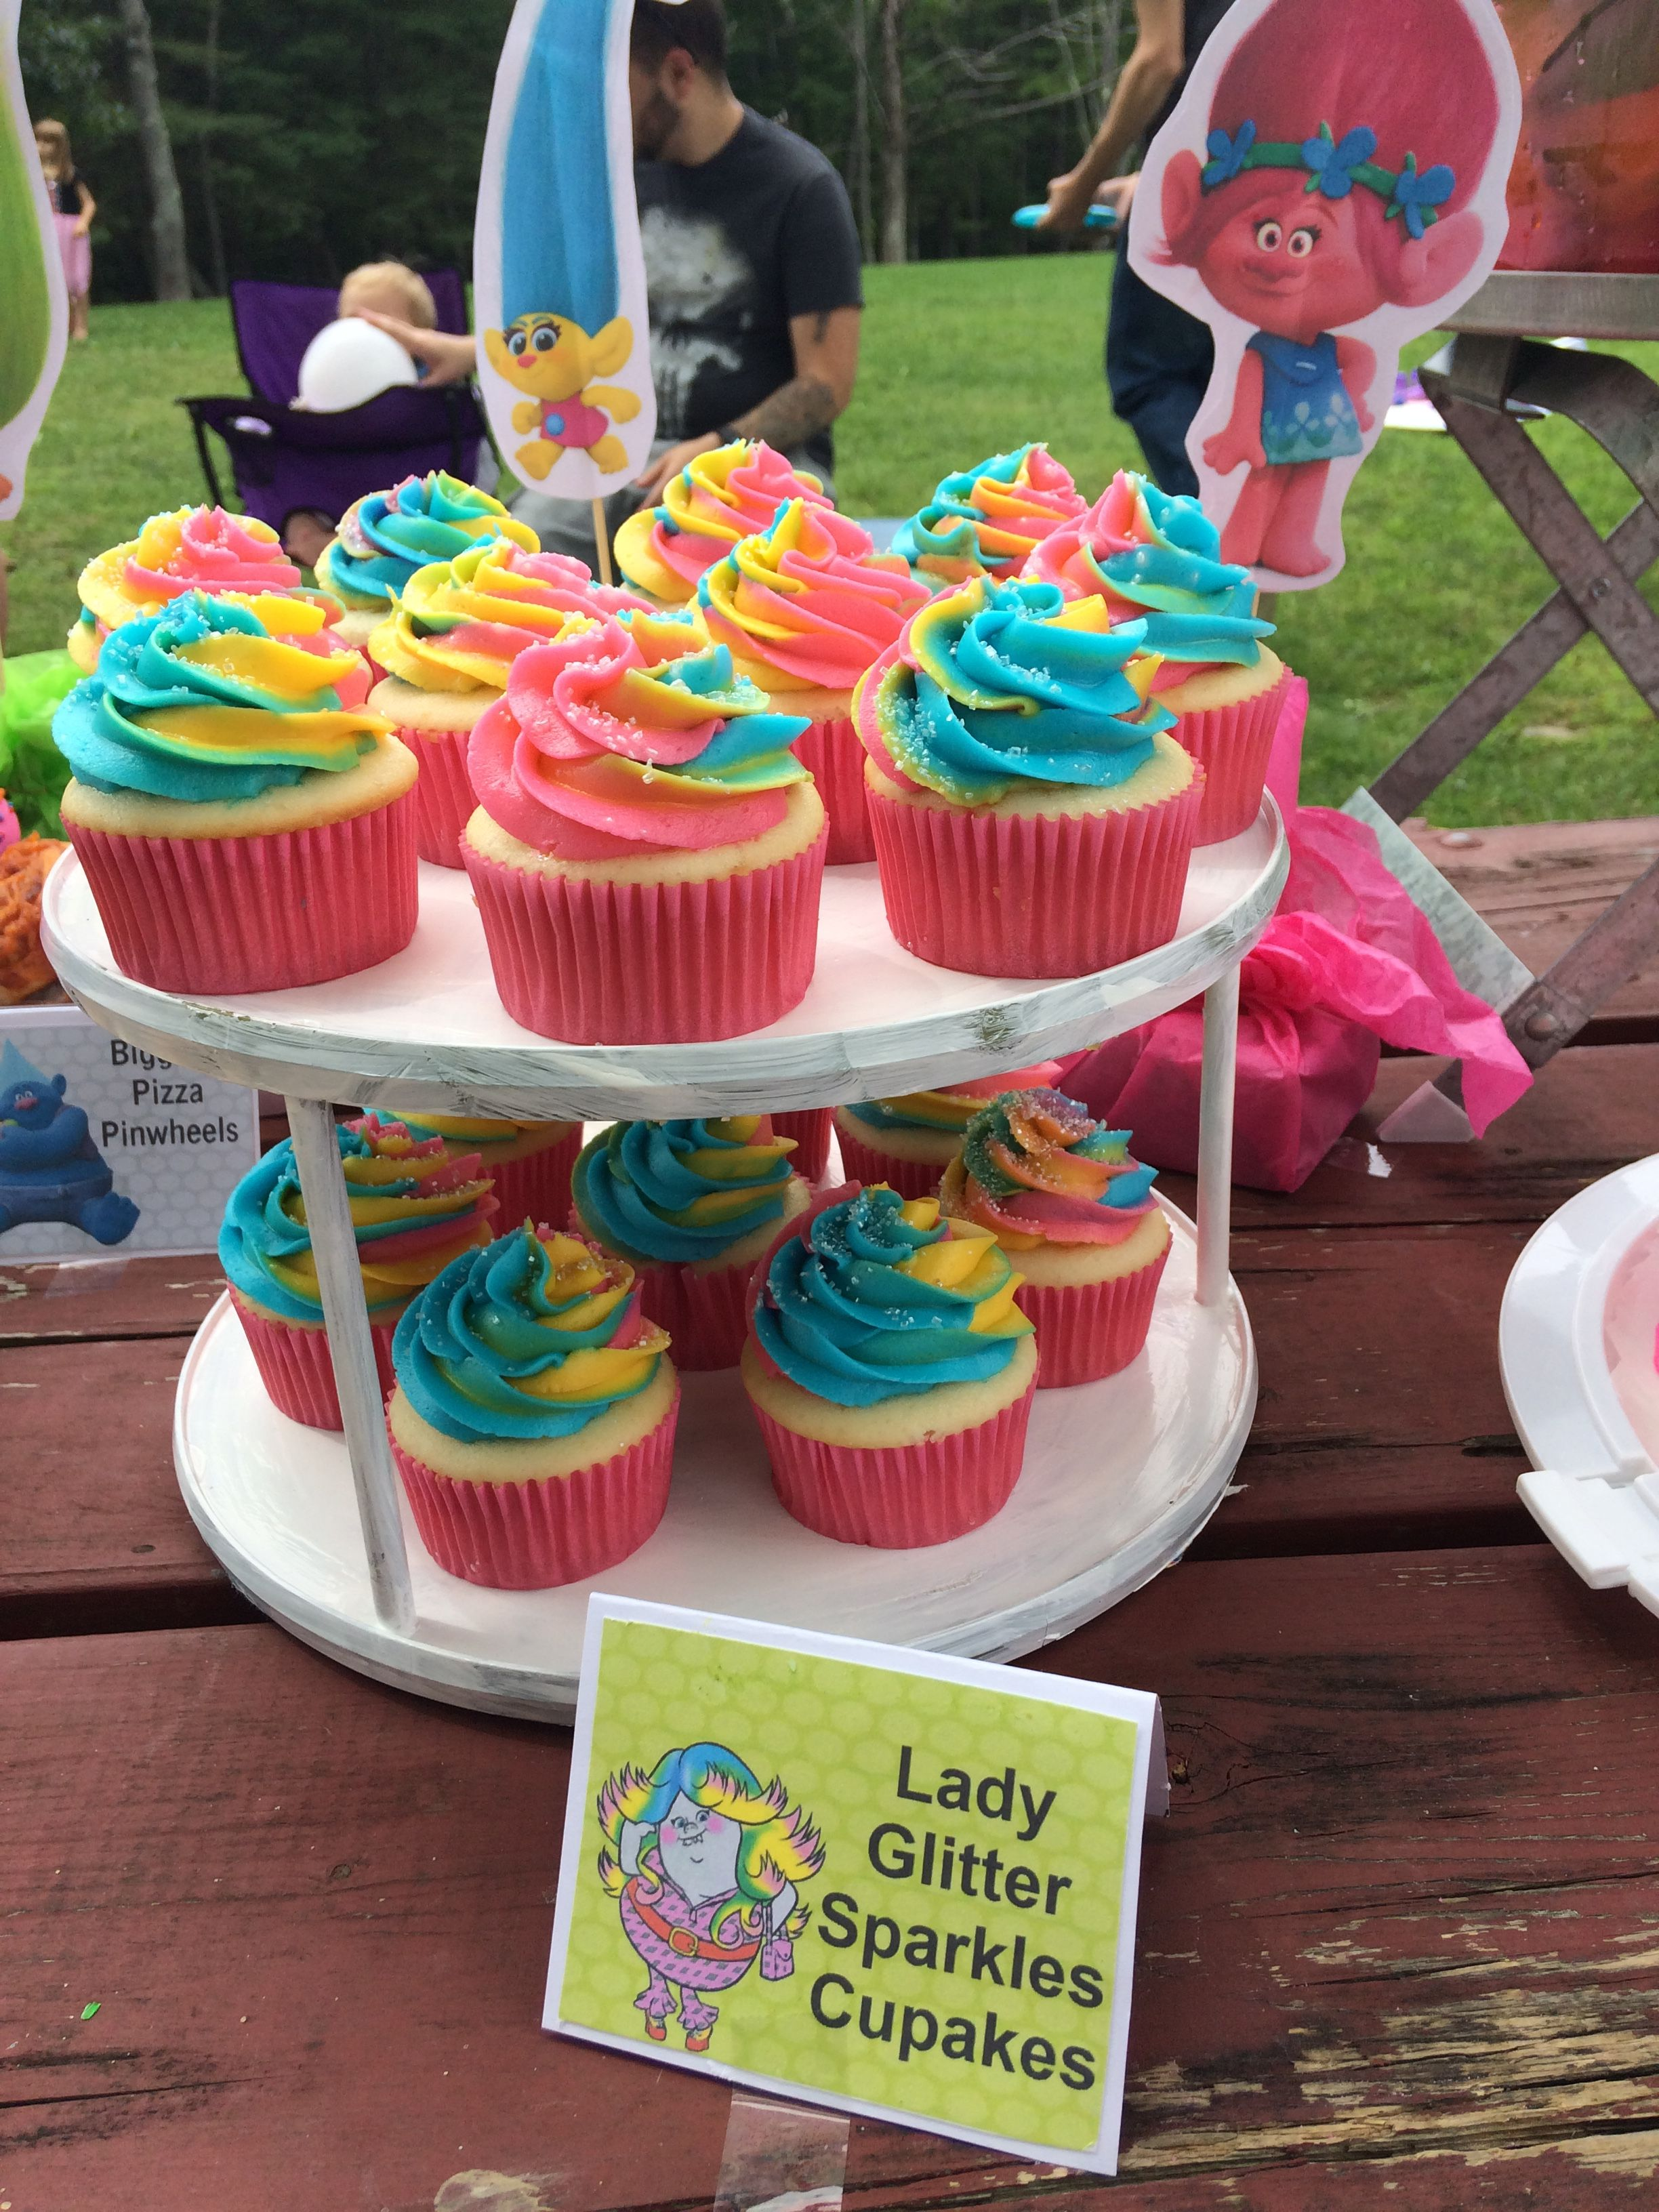 Lady Glitter Sparkles Cupcakes Food